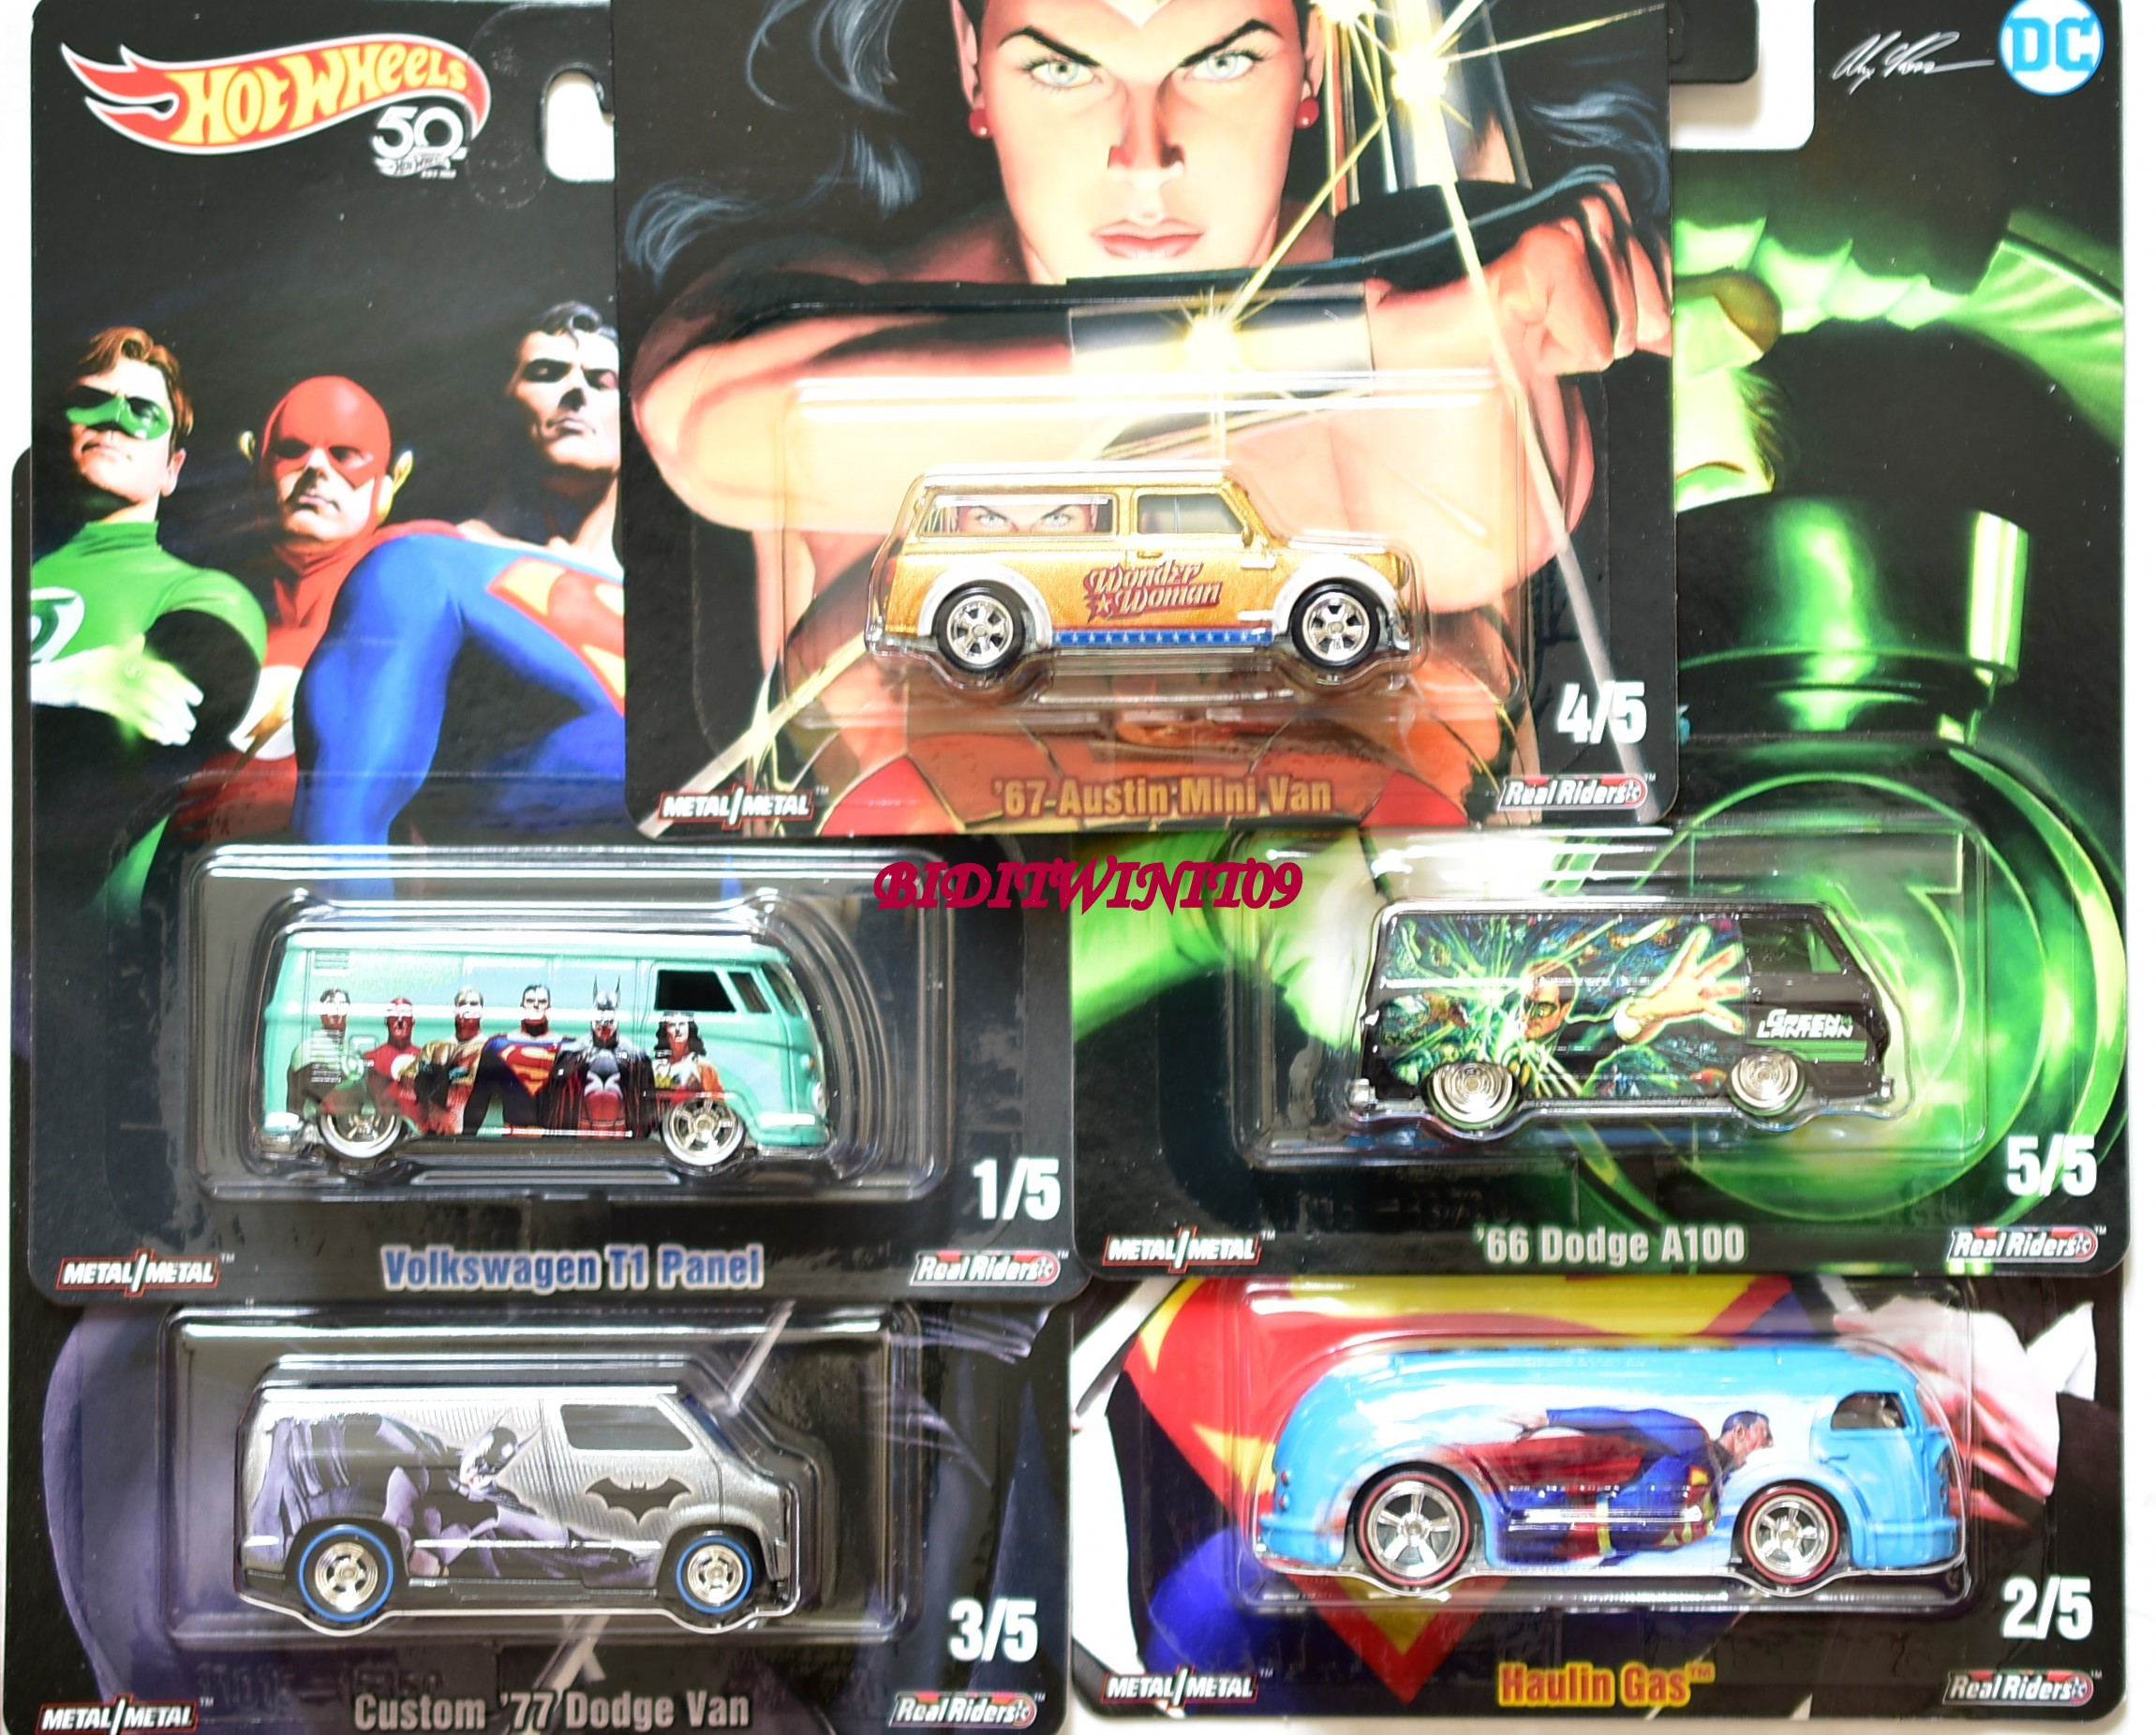 HOT WHEELS POP CULTURE 2018 DC SET OF 5 VW DODGE AUSTIN MINI VAN